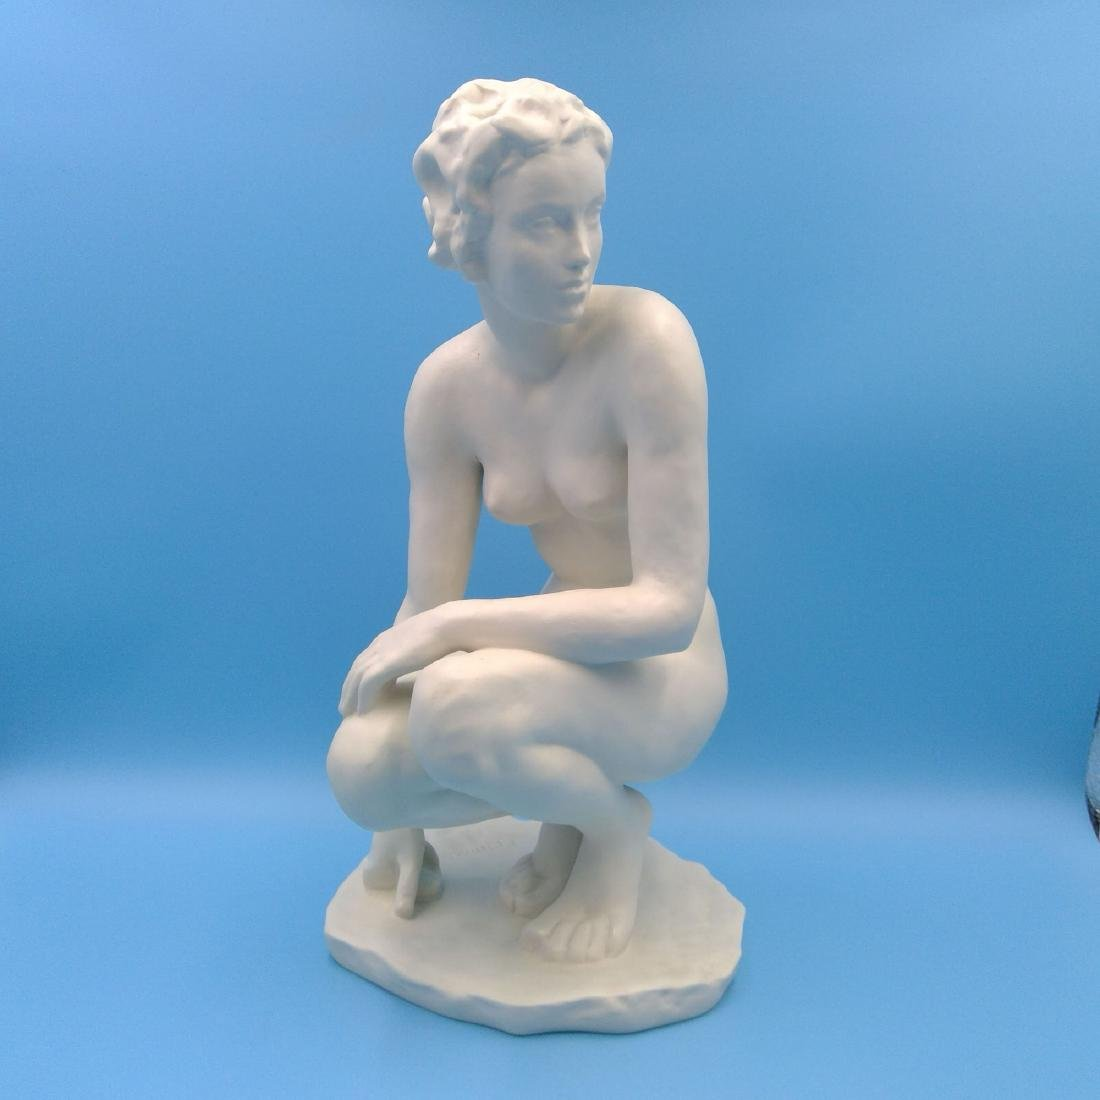 ROSENTHAL NUDE SCULPTURE LARGE FIGURINE